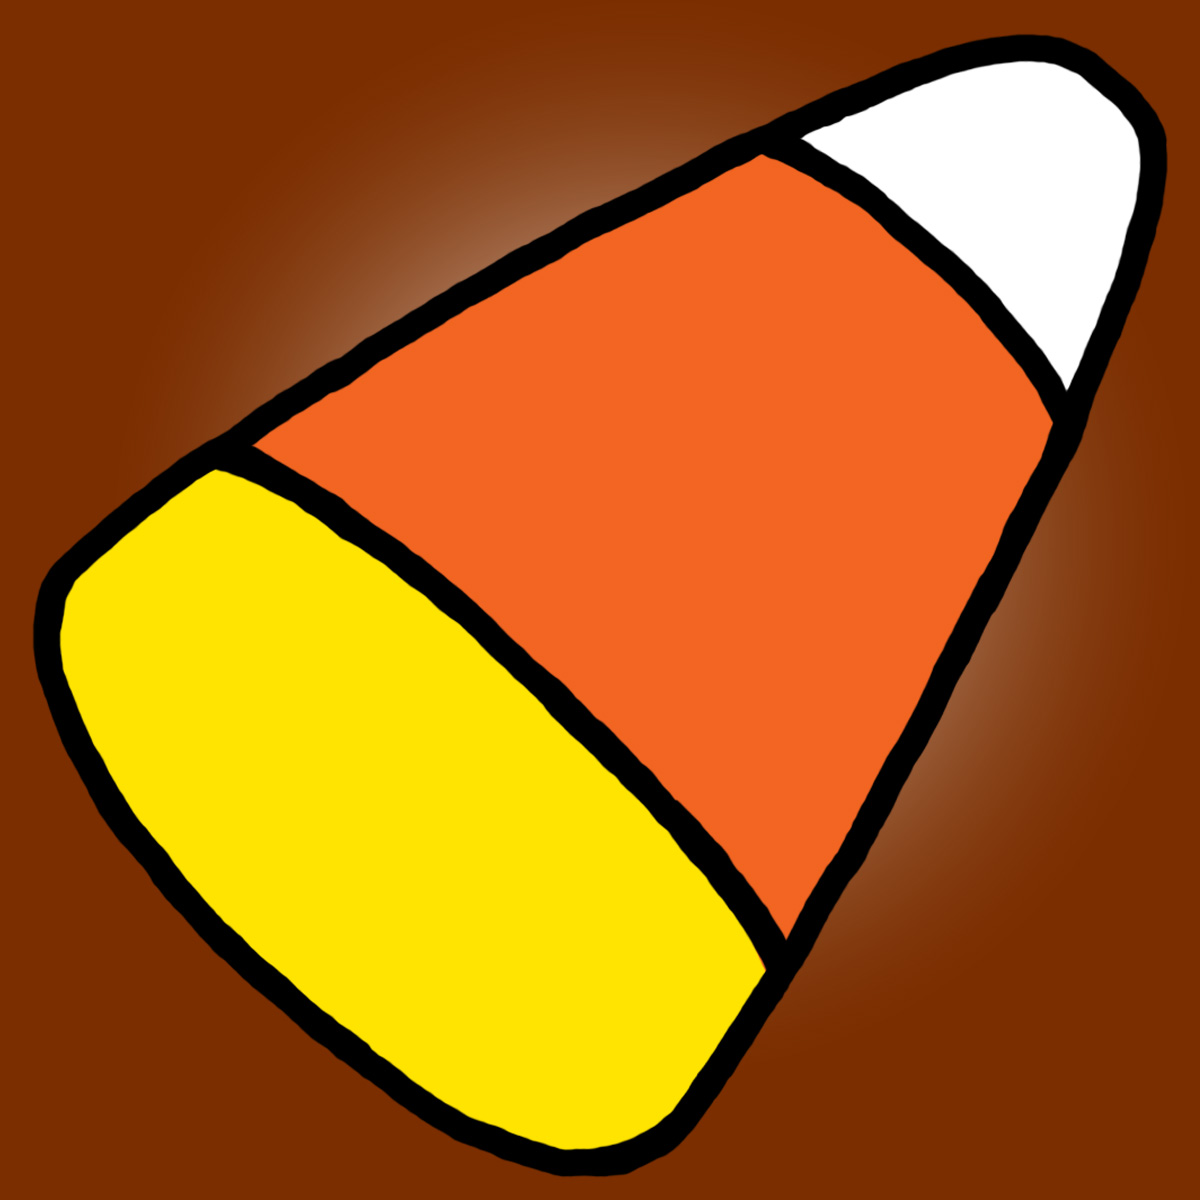 Candy corn coloring sheet clipart 2 wikiclipart.